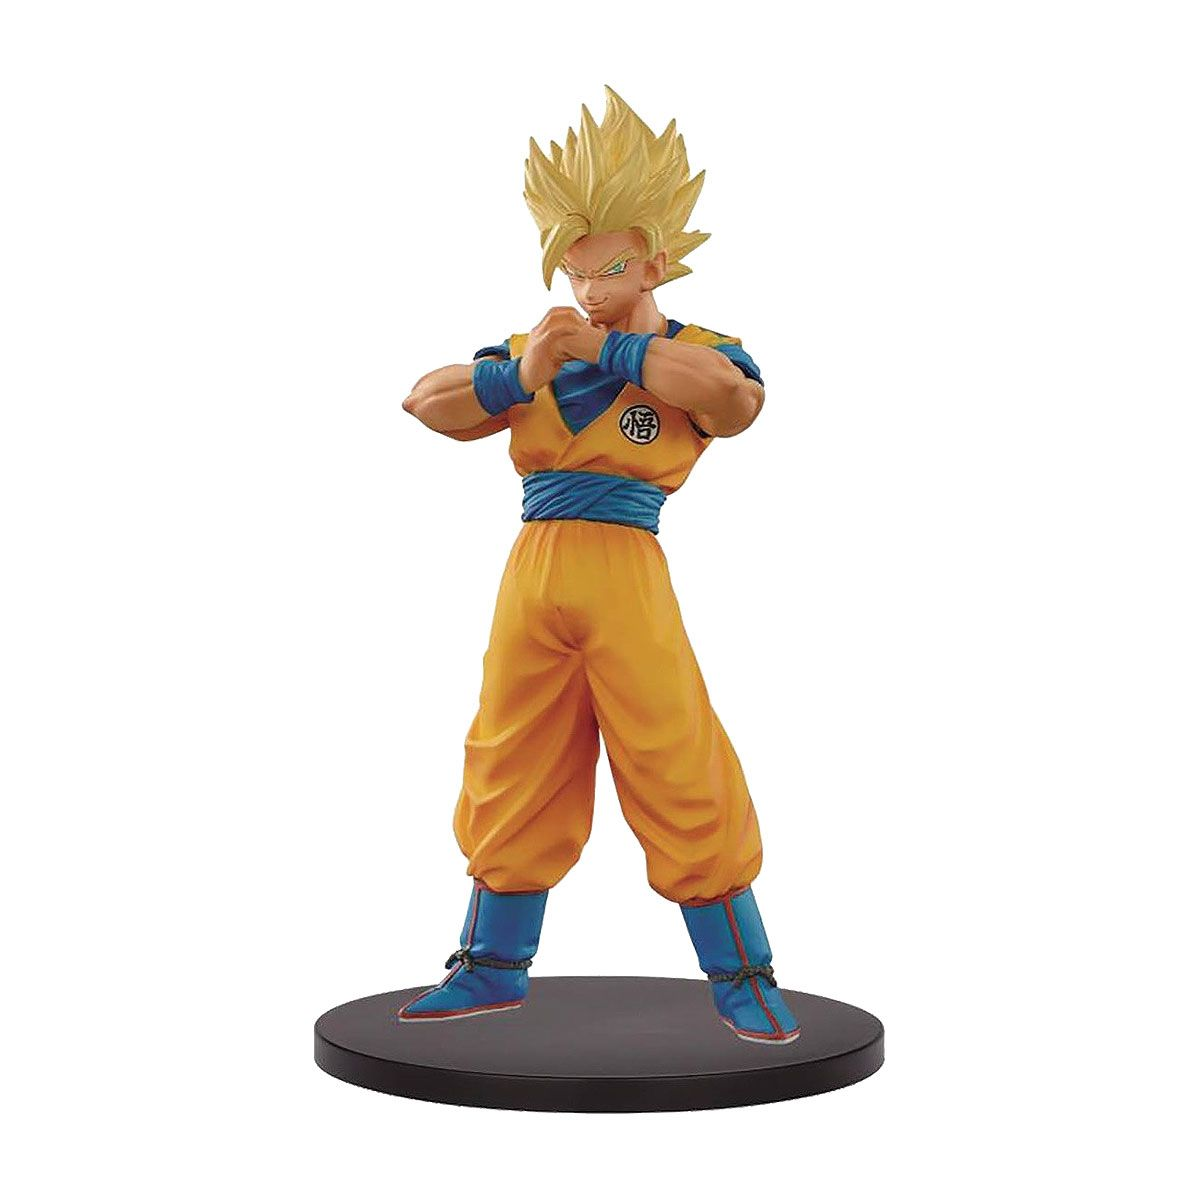 Estátua Super Saiyajin 2 Goku: Dragon Ball Super - Banpresto - CG